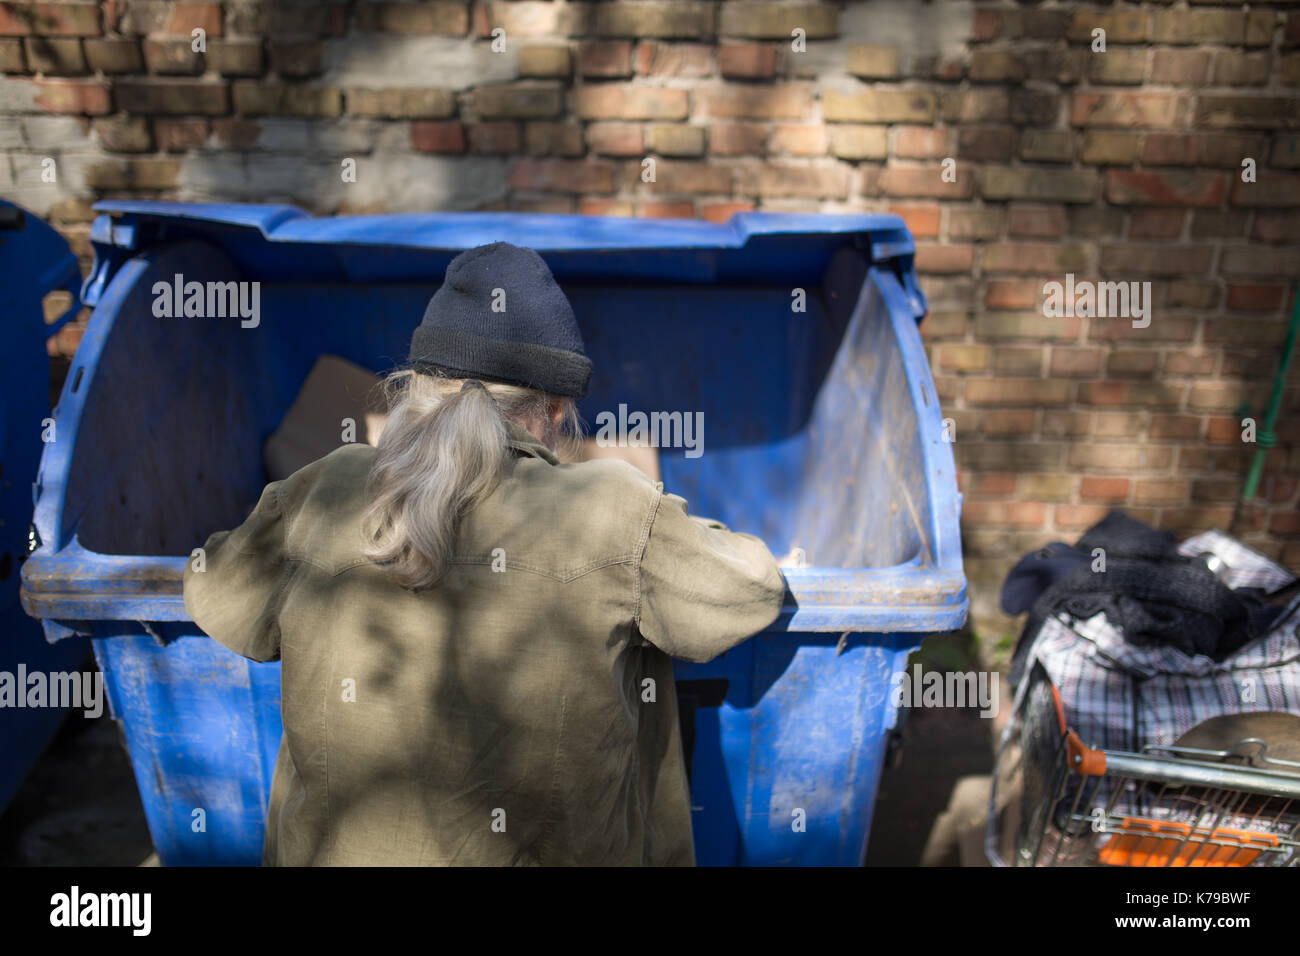 Homeless old man digging in trash can Stock Photo   Alamy